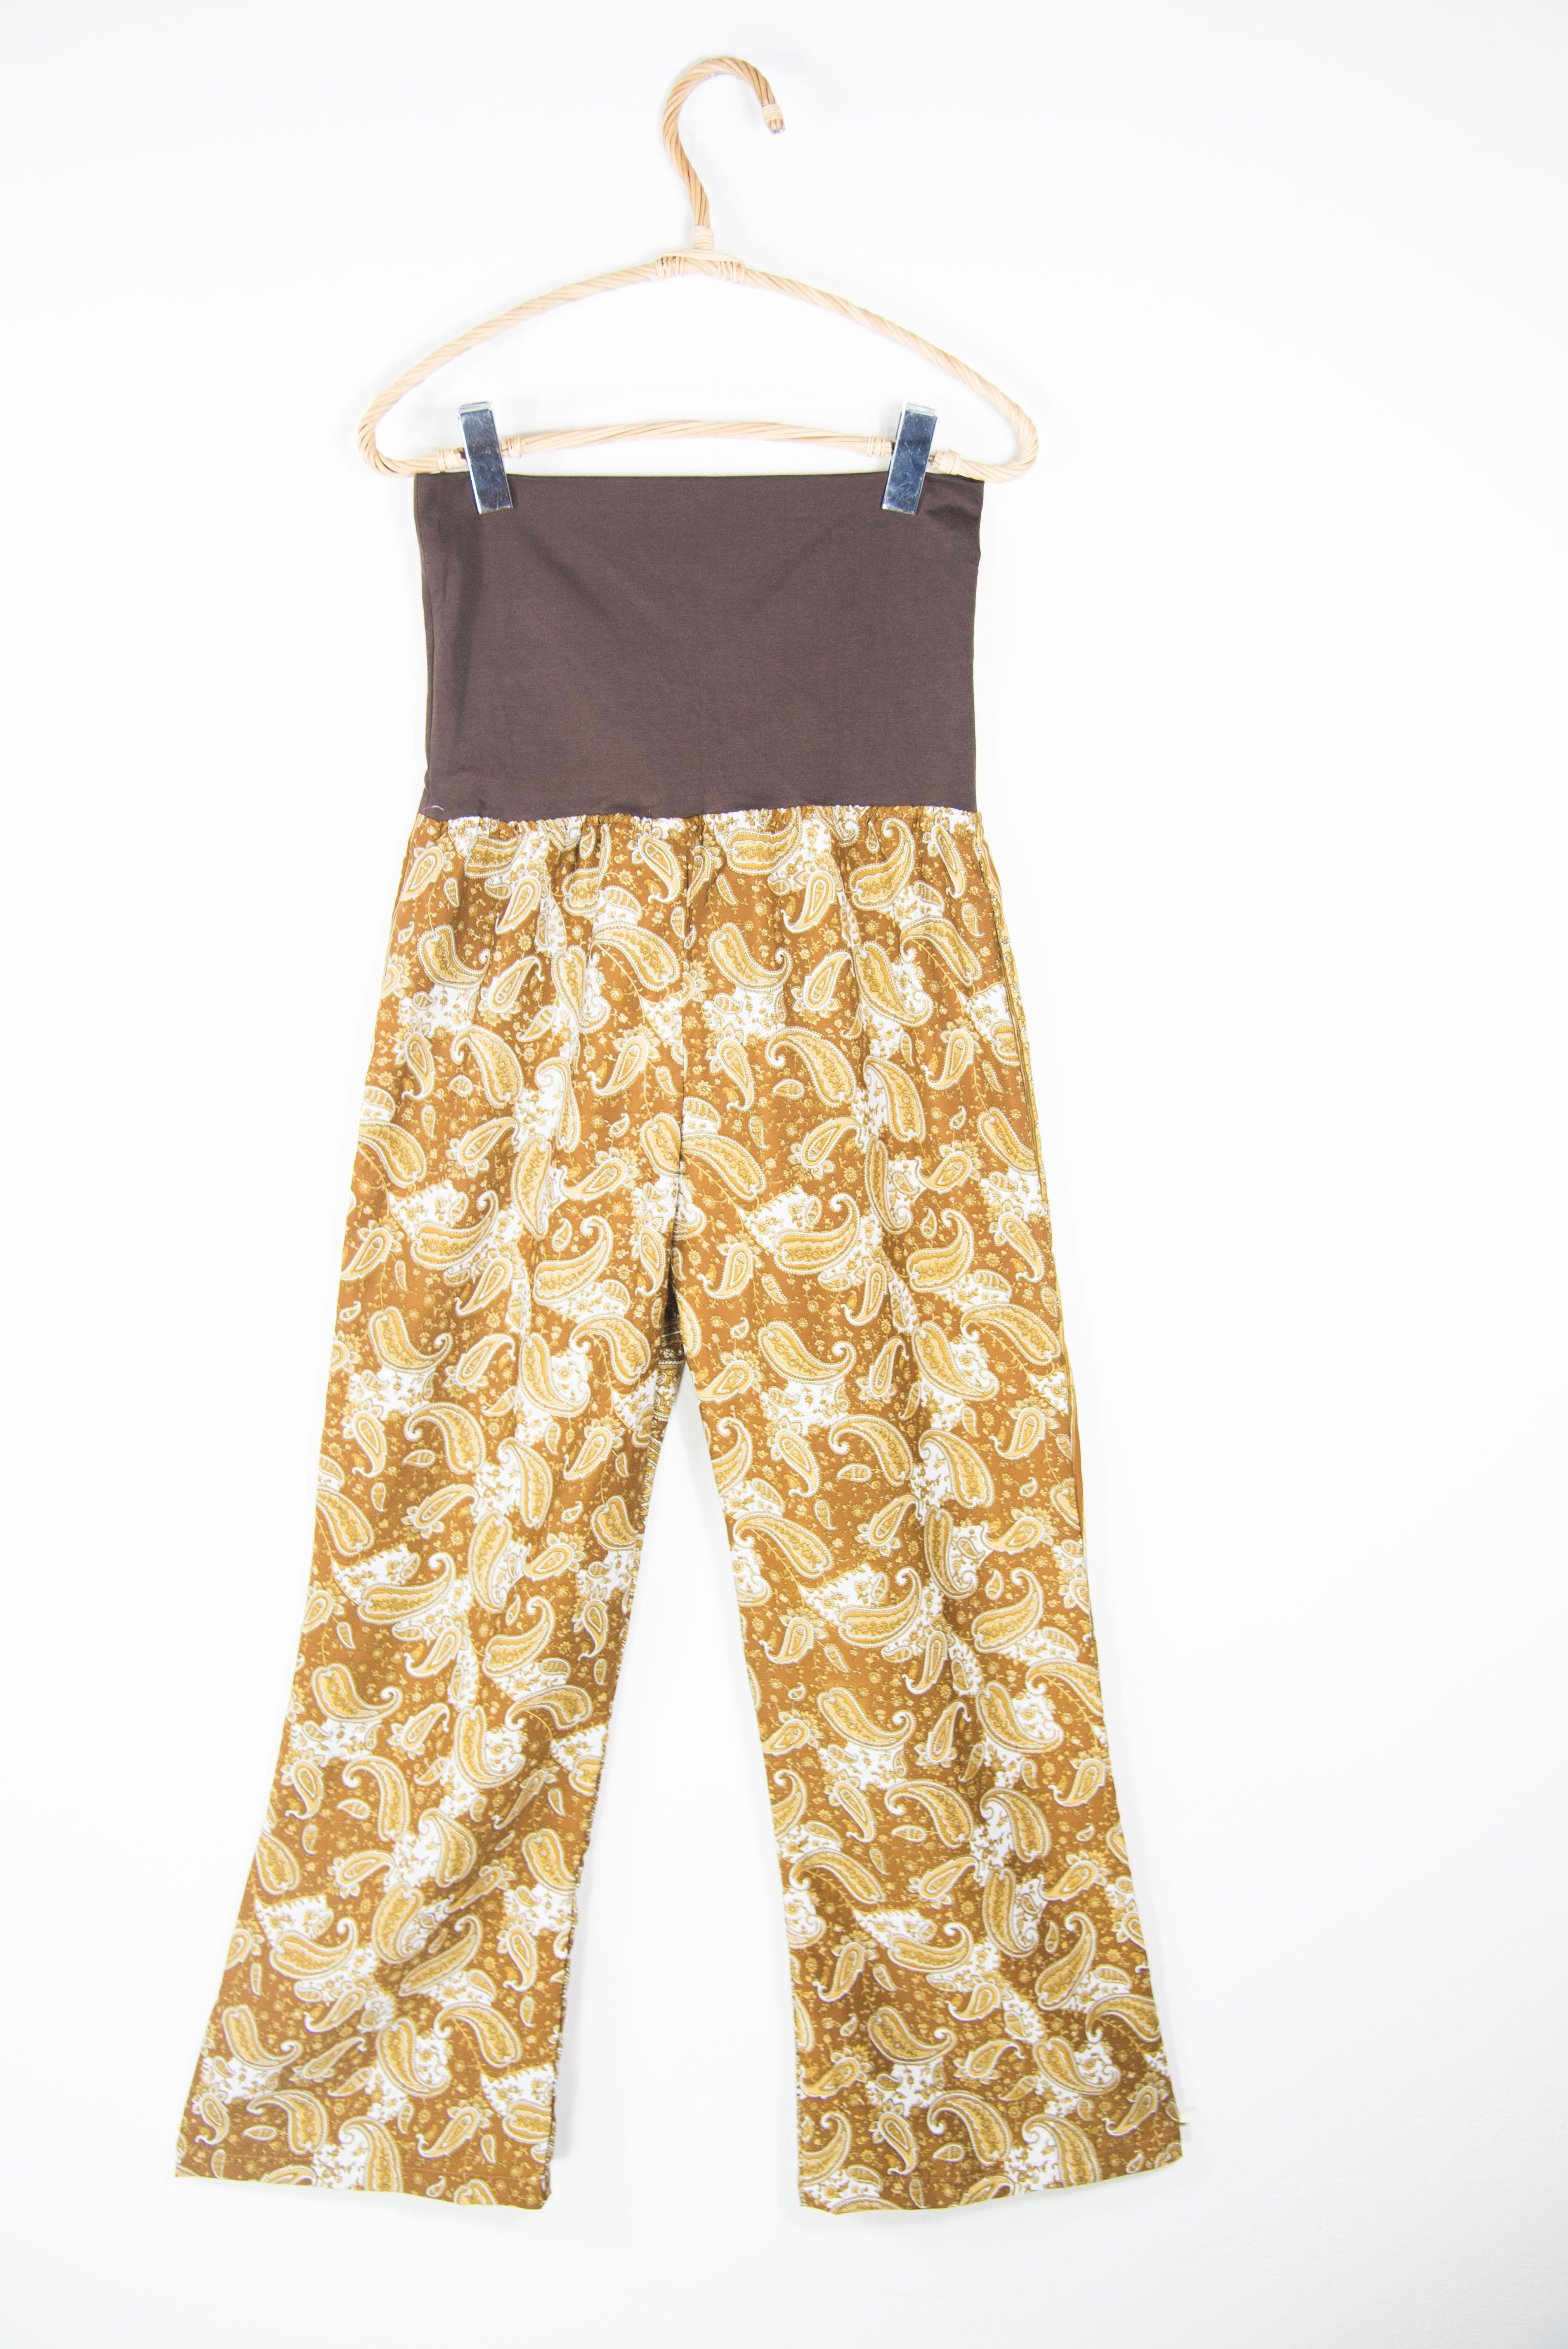 Ethnic summer trousers | Online sale of women's trousers